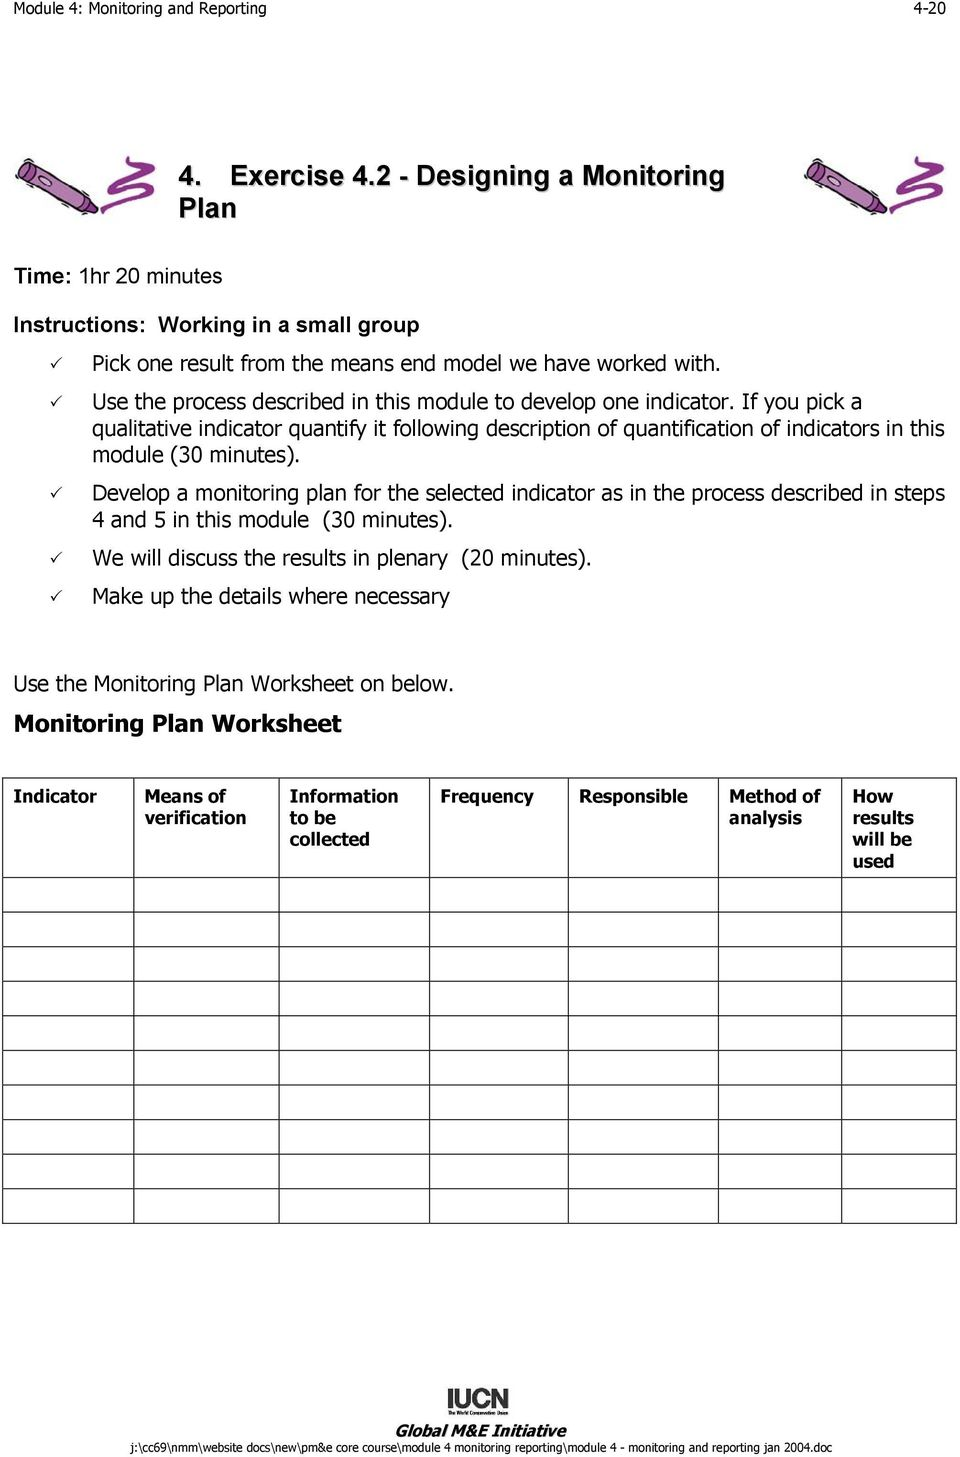 Use the process described in this module to develop one indicator. If you pick a qualitative indicator quantify it following description of quantification of indicators in this module (30 minutes).